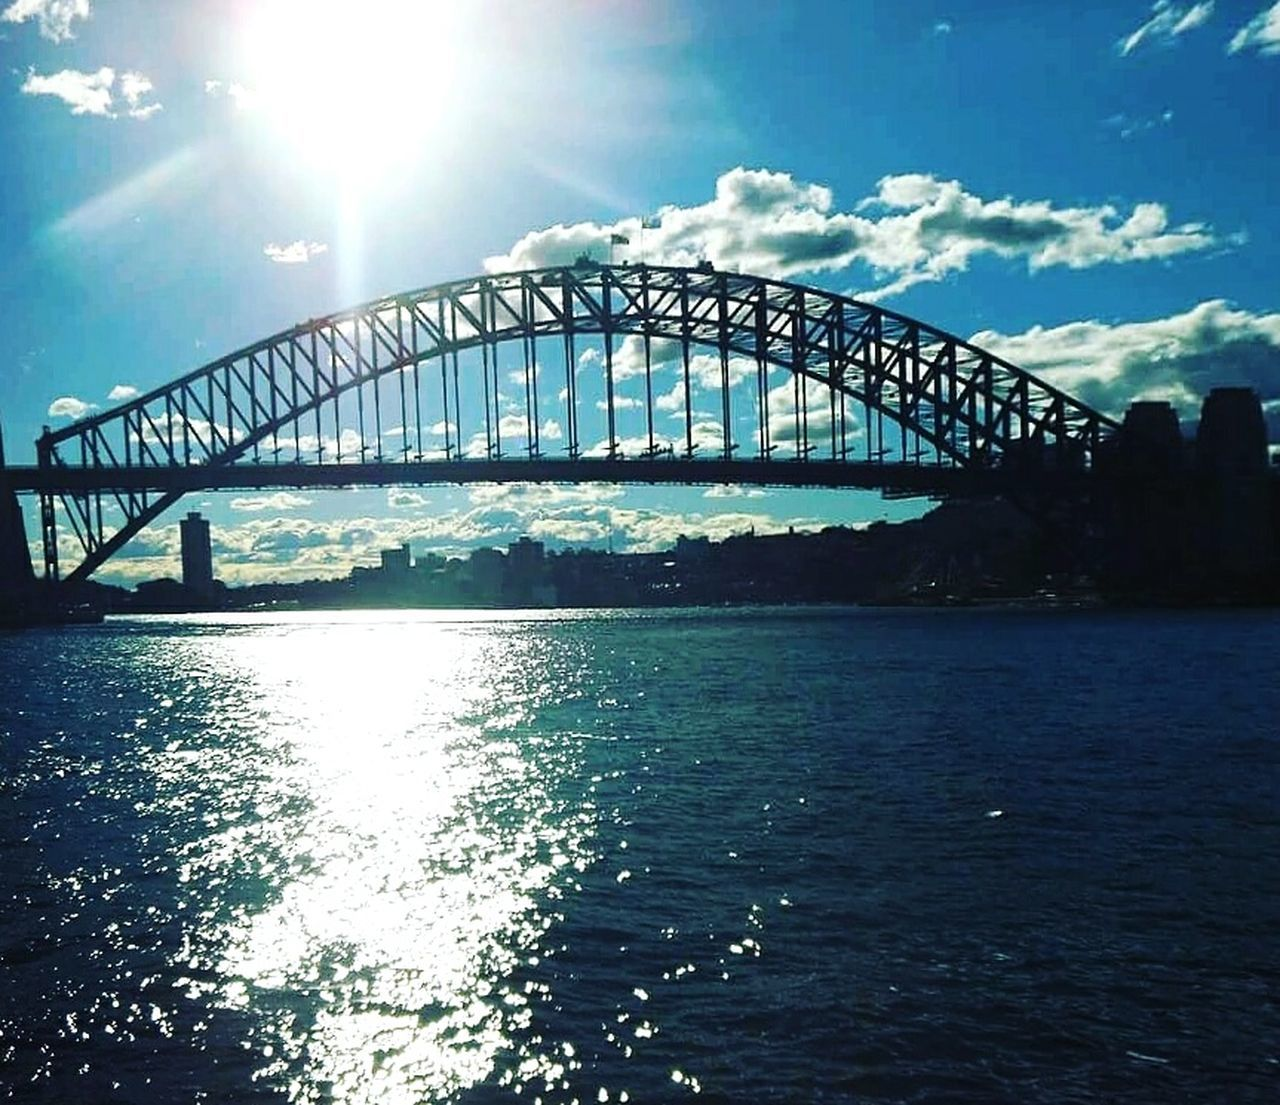 bridge - man made structure, connection, built structure, sunlight, architecture, travel destinations, no people, transportation, water, day, outdoors, sky, sea, nature, city